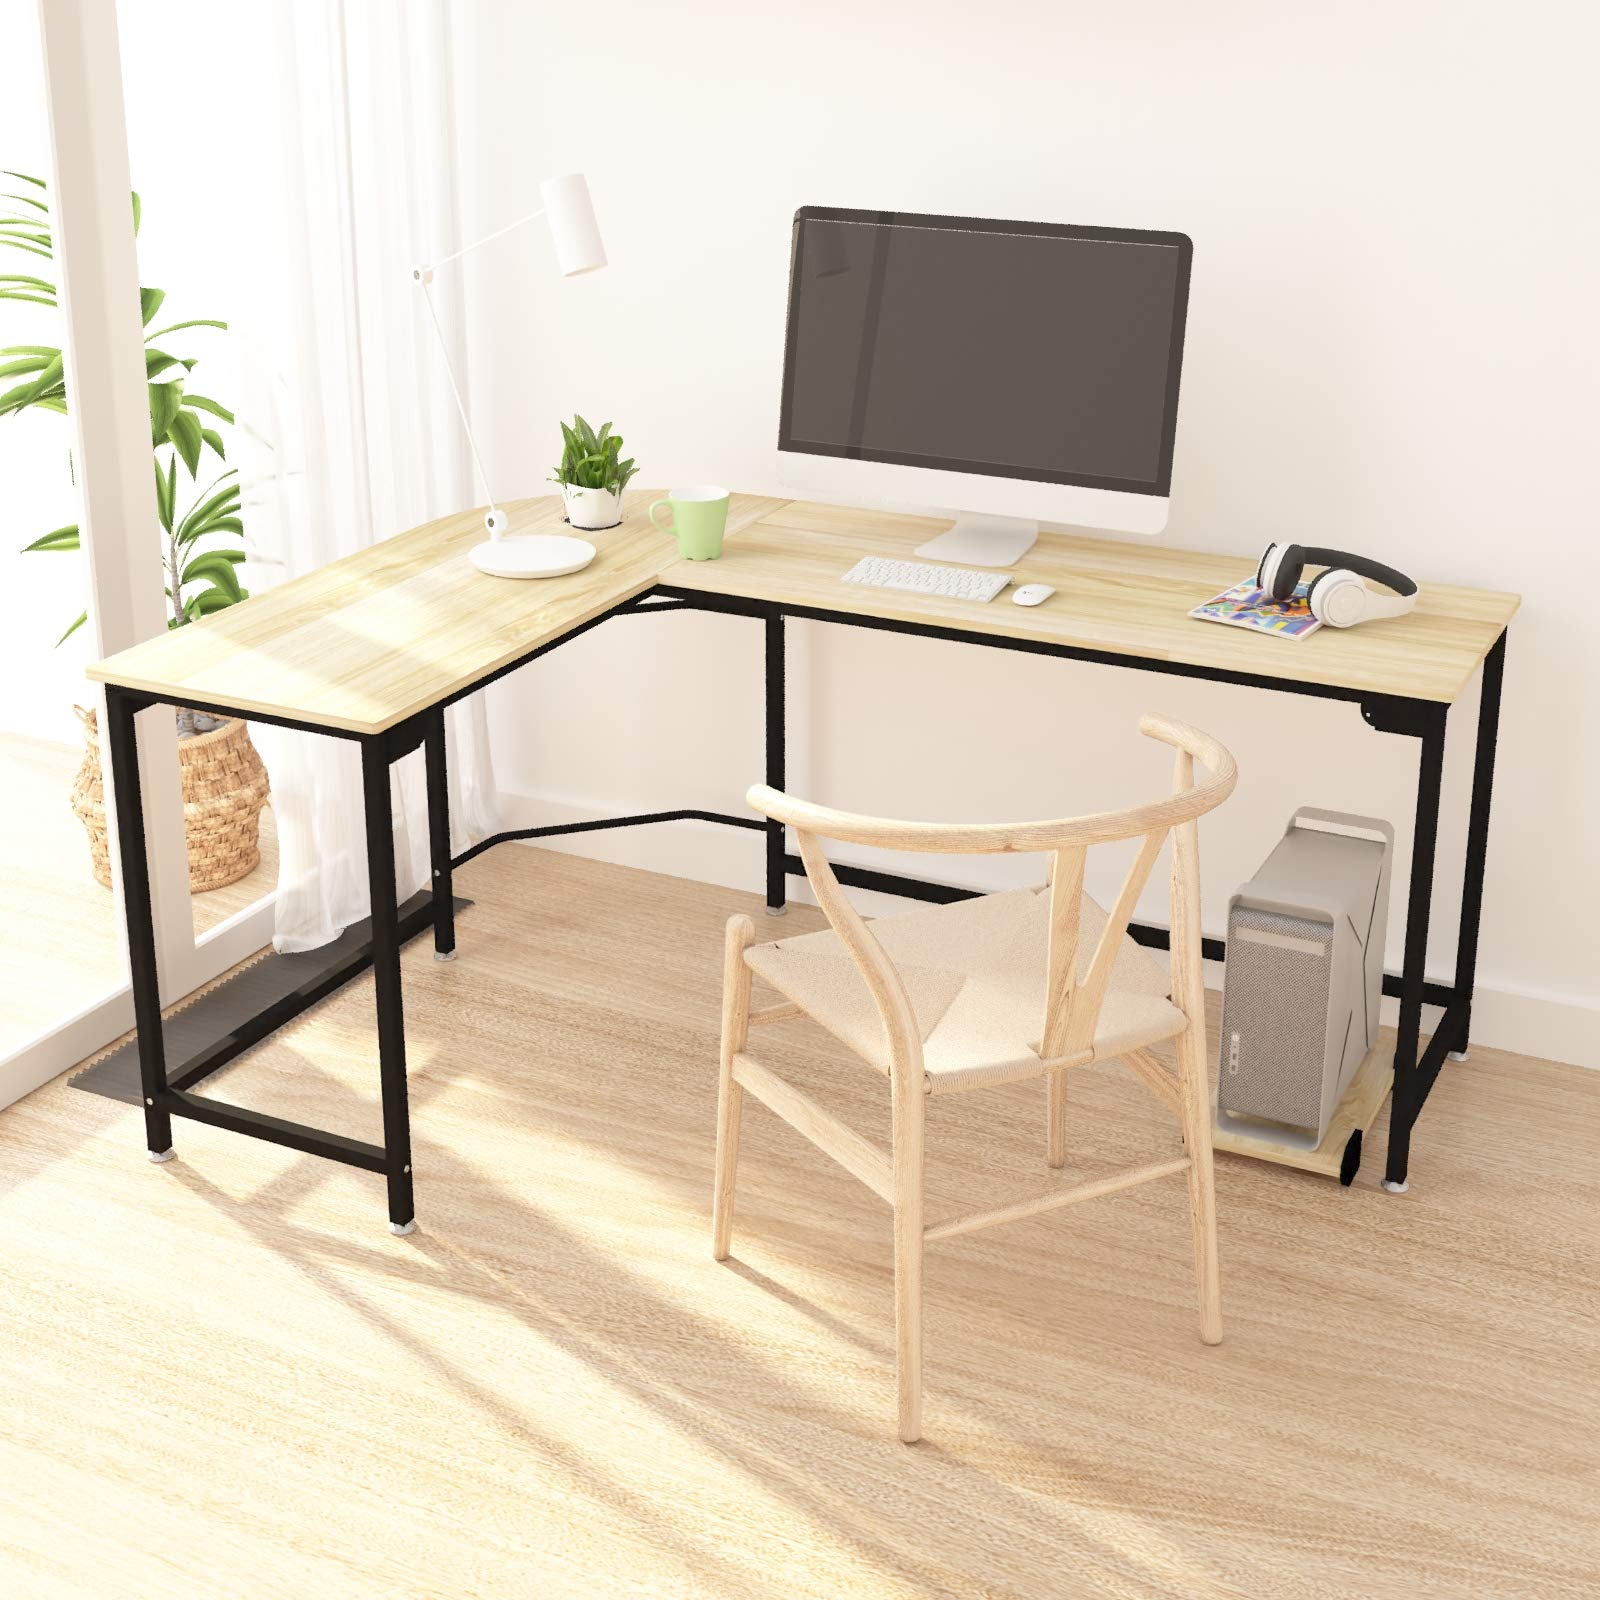 Hago Modern L-Shaped Desk Corner Computer Desk Home Office Study Workstation Wood & Steel PC Laptop Gaming Table by Teraves